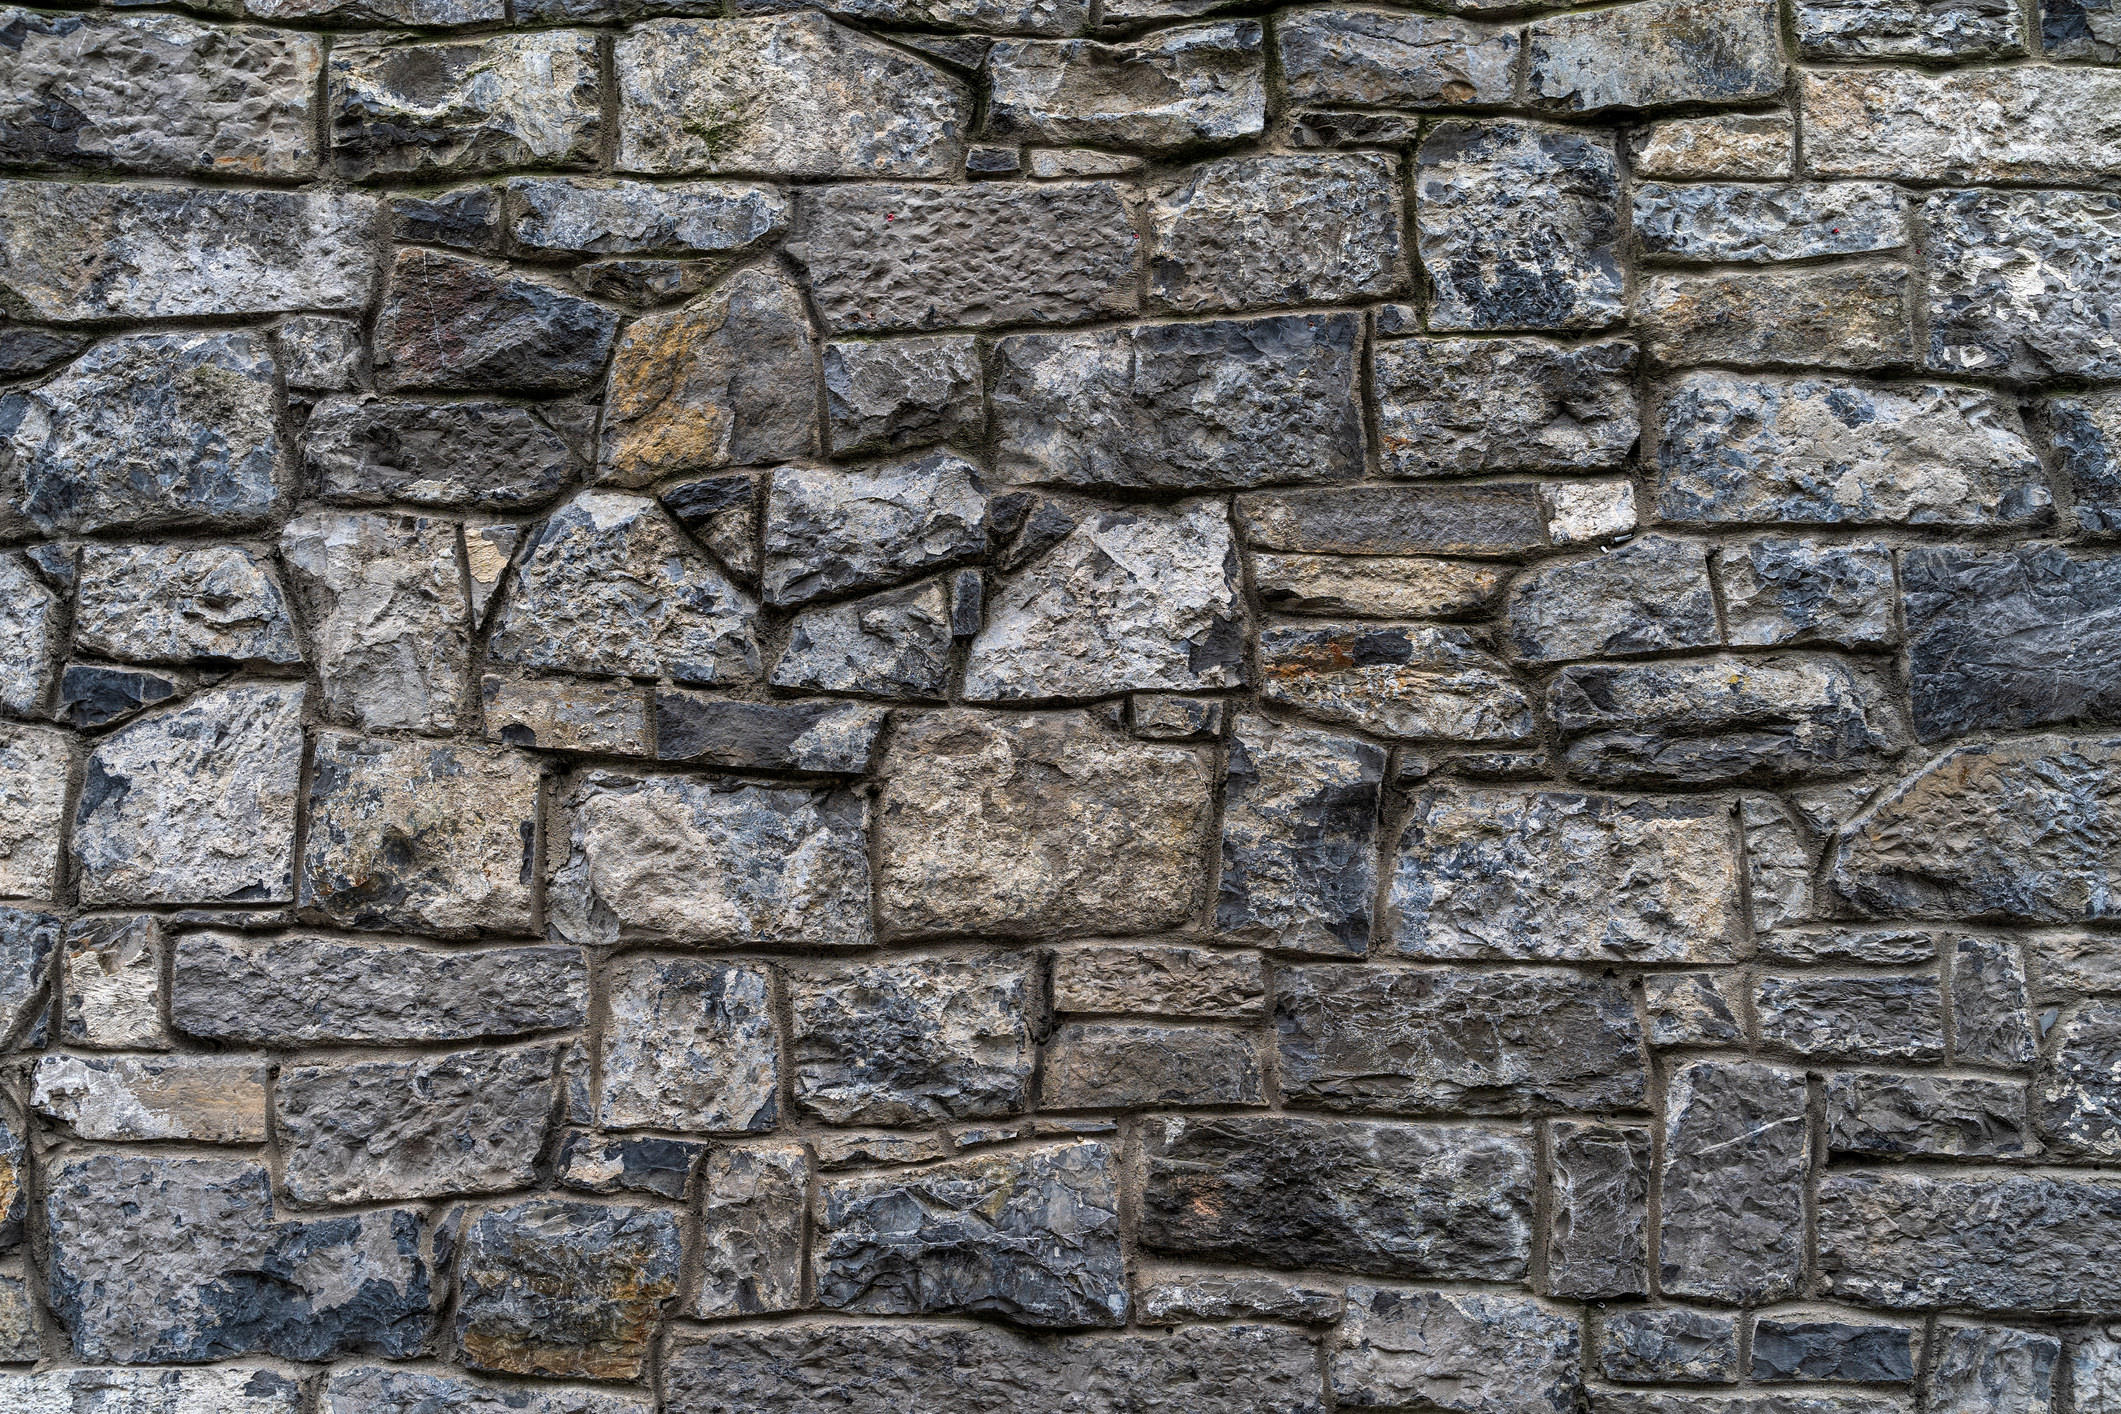 Rough-hewn bricks assembled to form a solid rock wall.